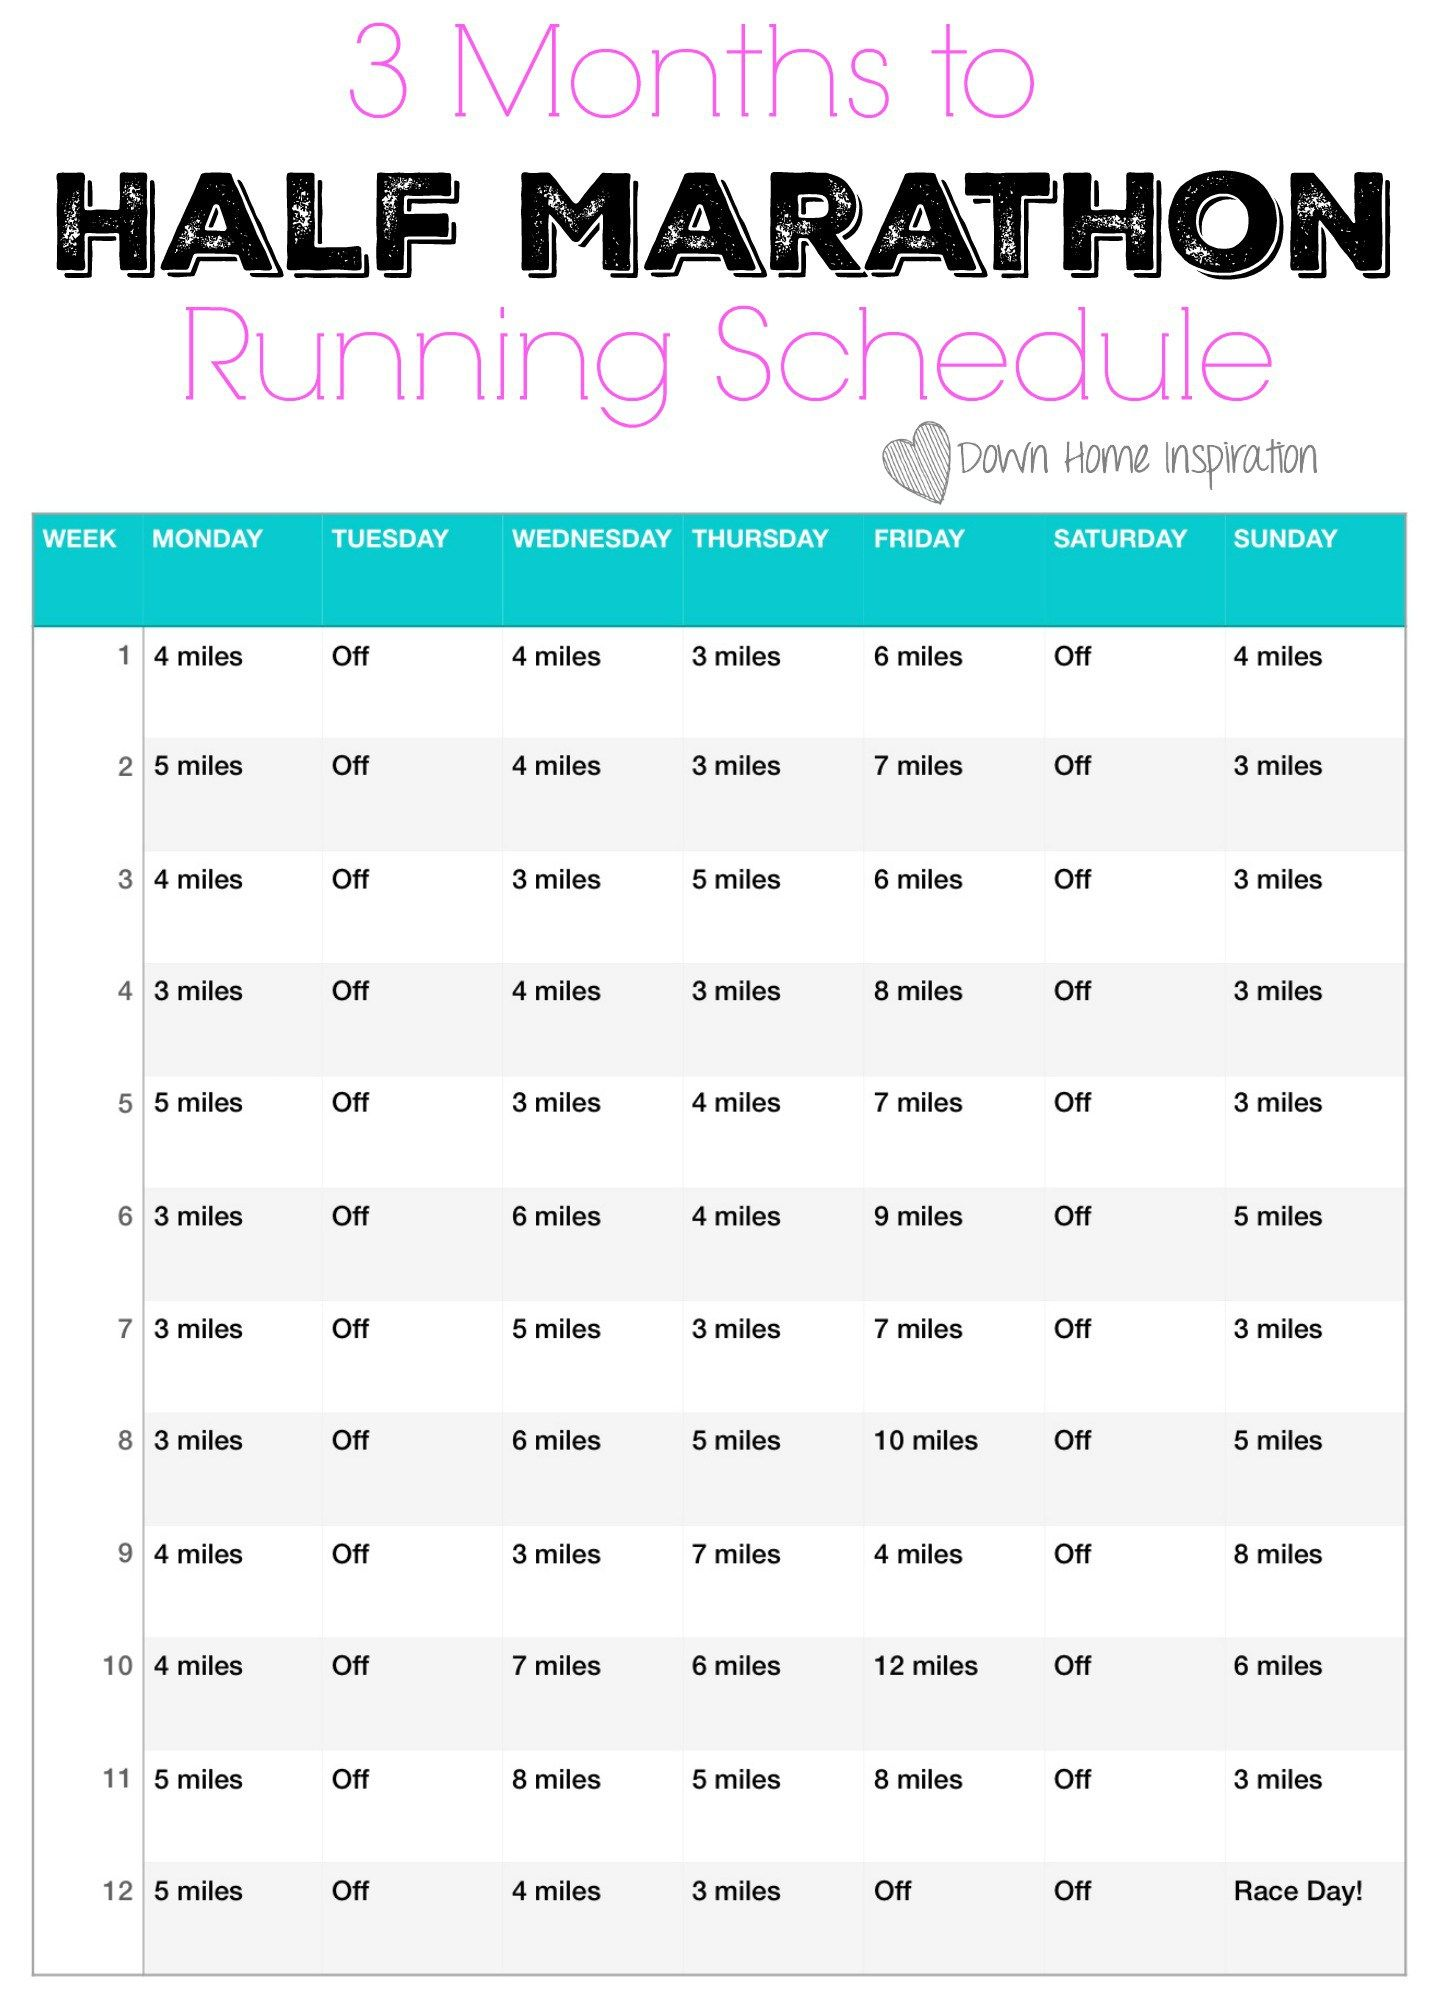 How I Went From Hating Running to a Half Marathon in 3 Months (& my Weekly Running Schedule) - Down Home Inspiration